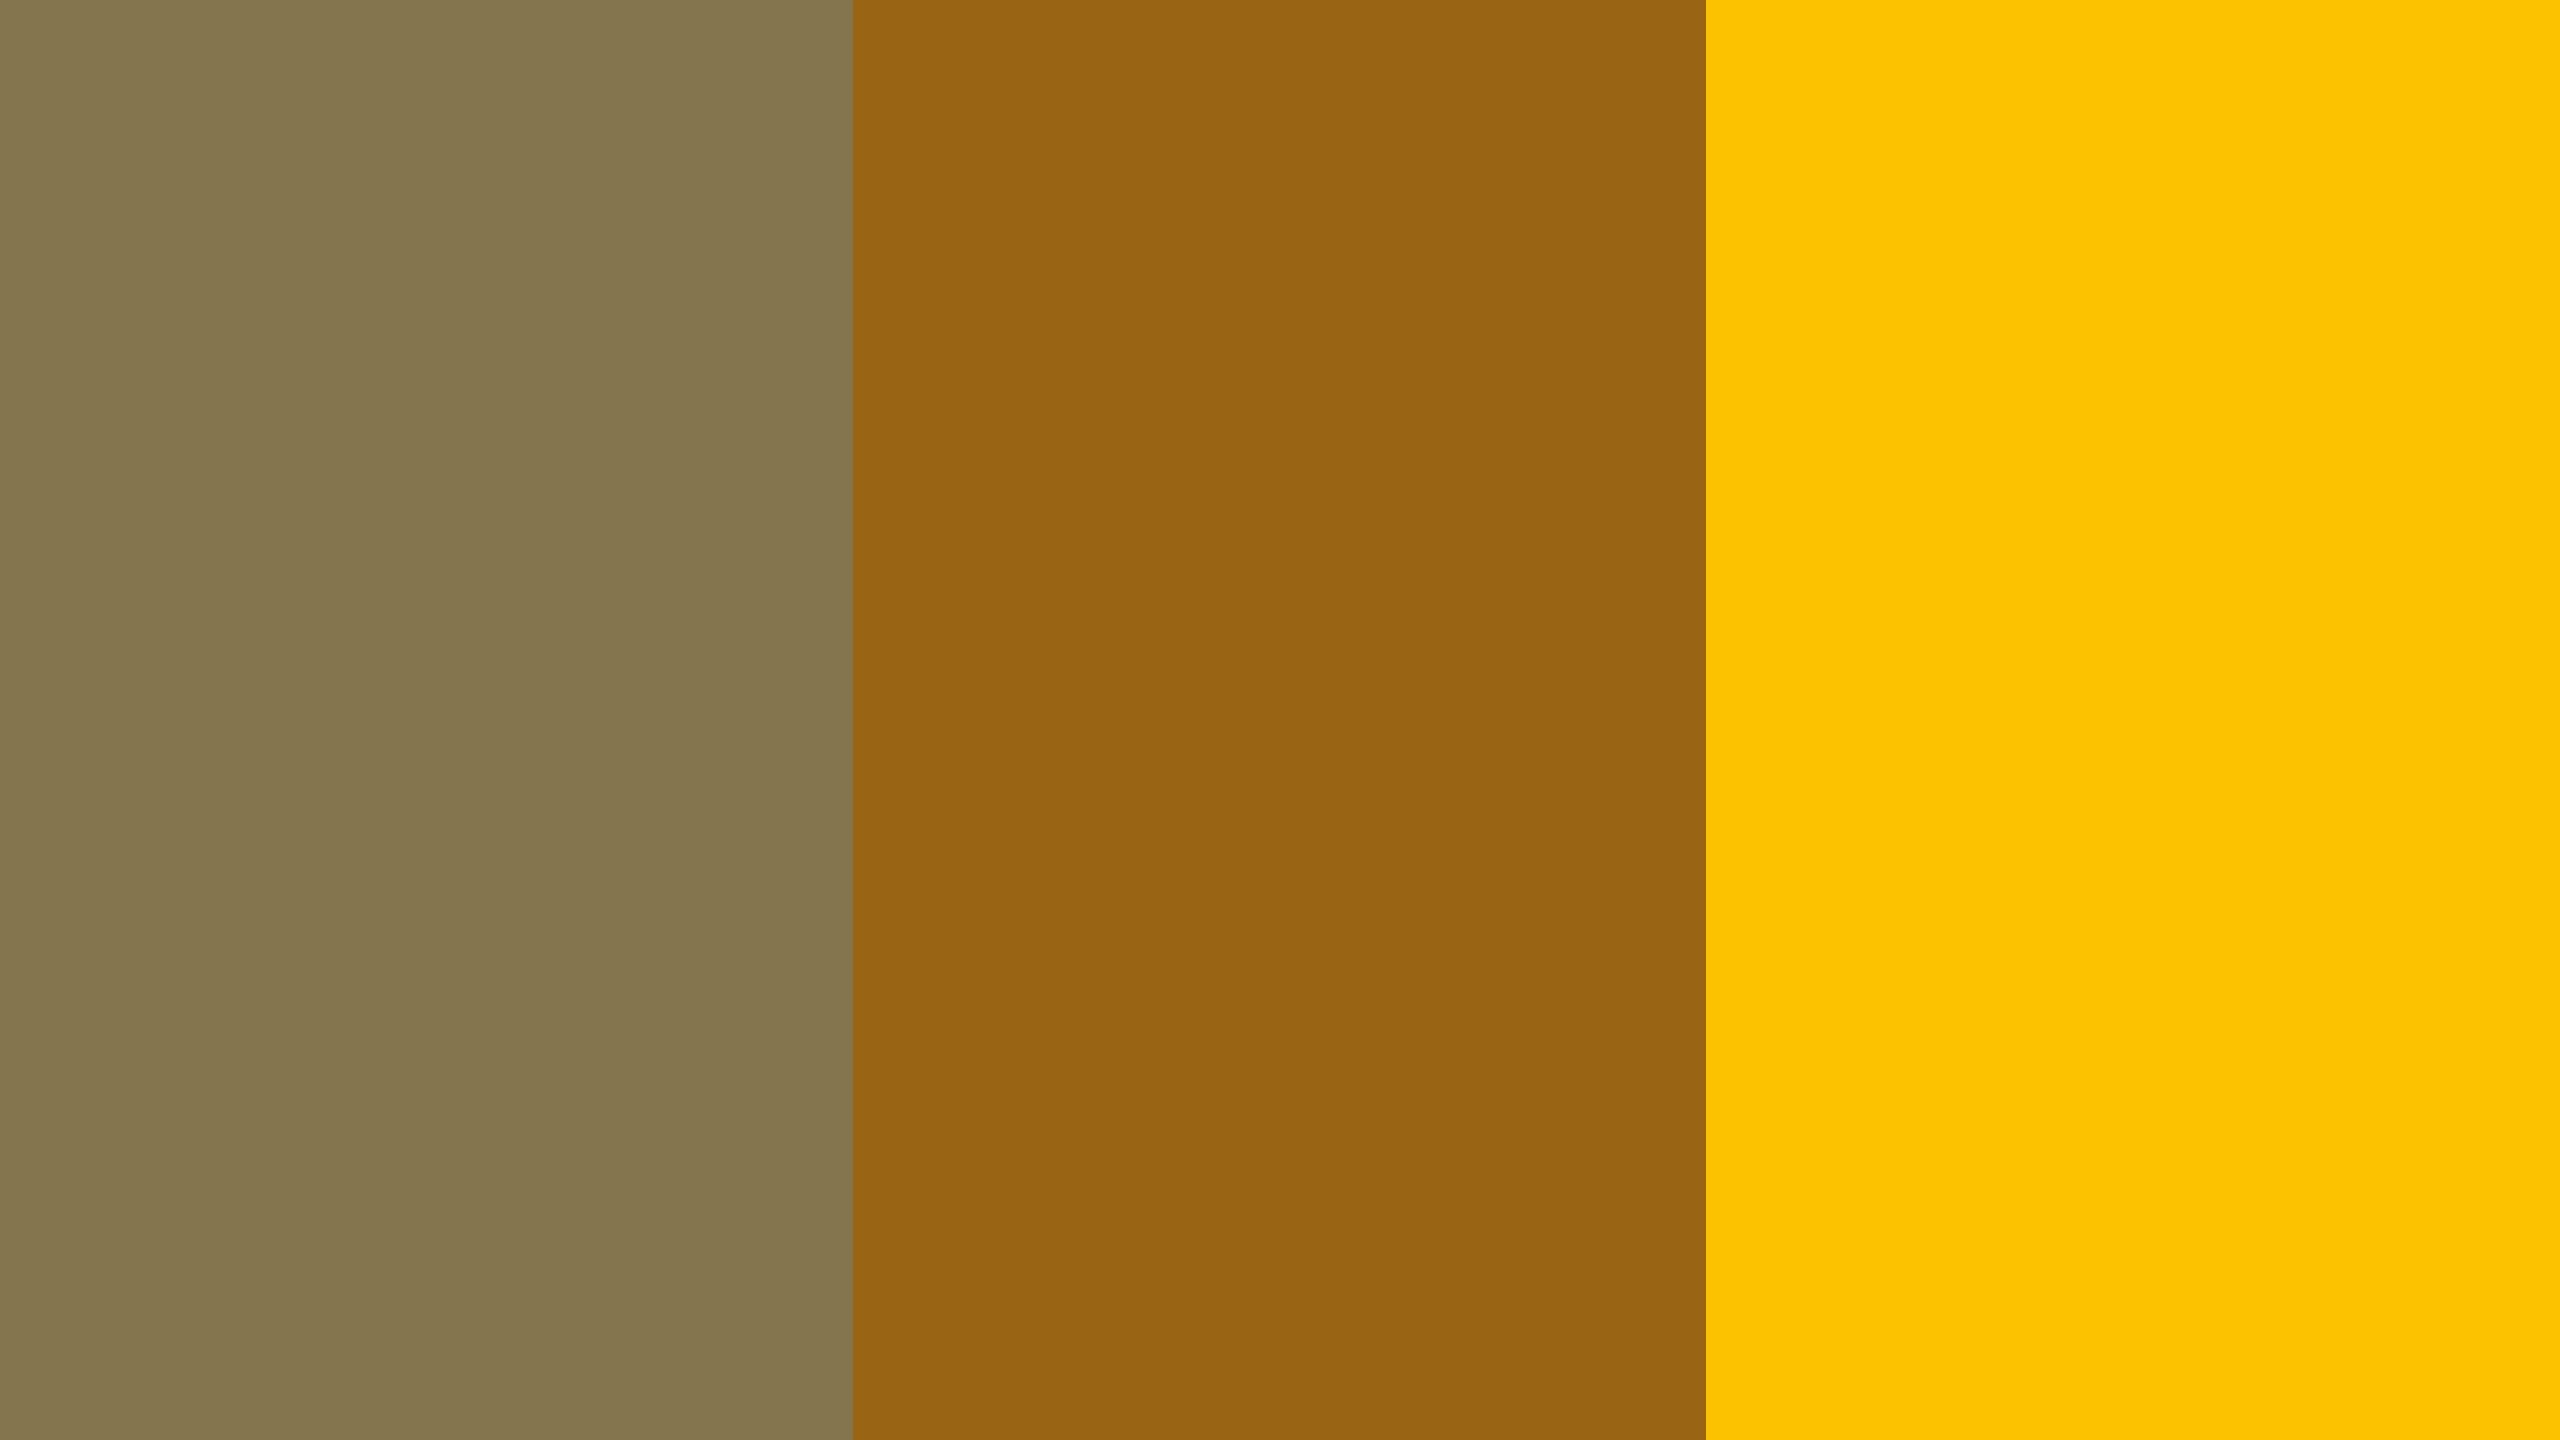 Gold Color Background Three color background 2560x1440